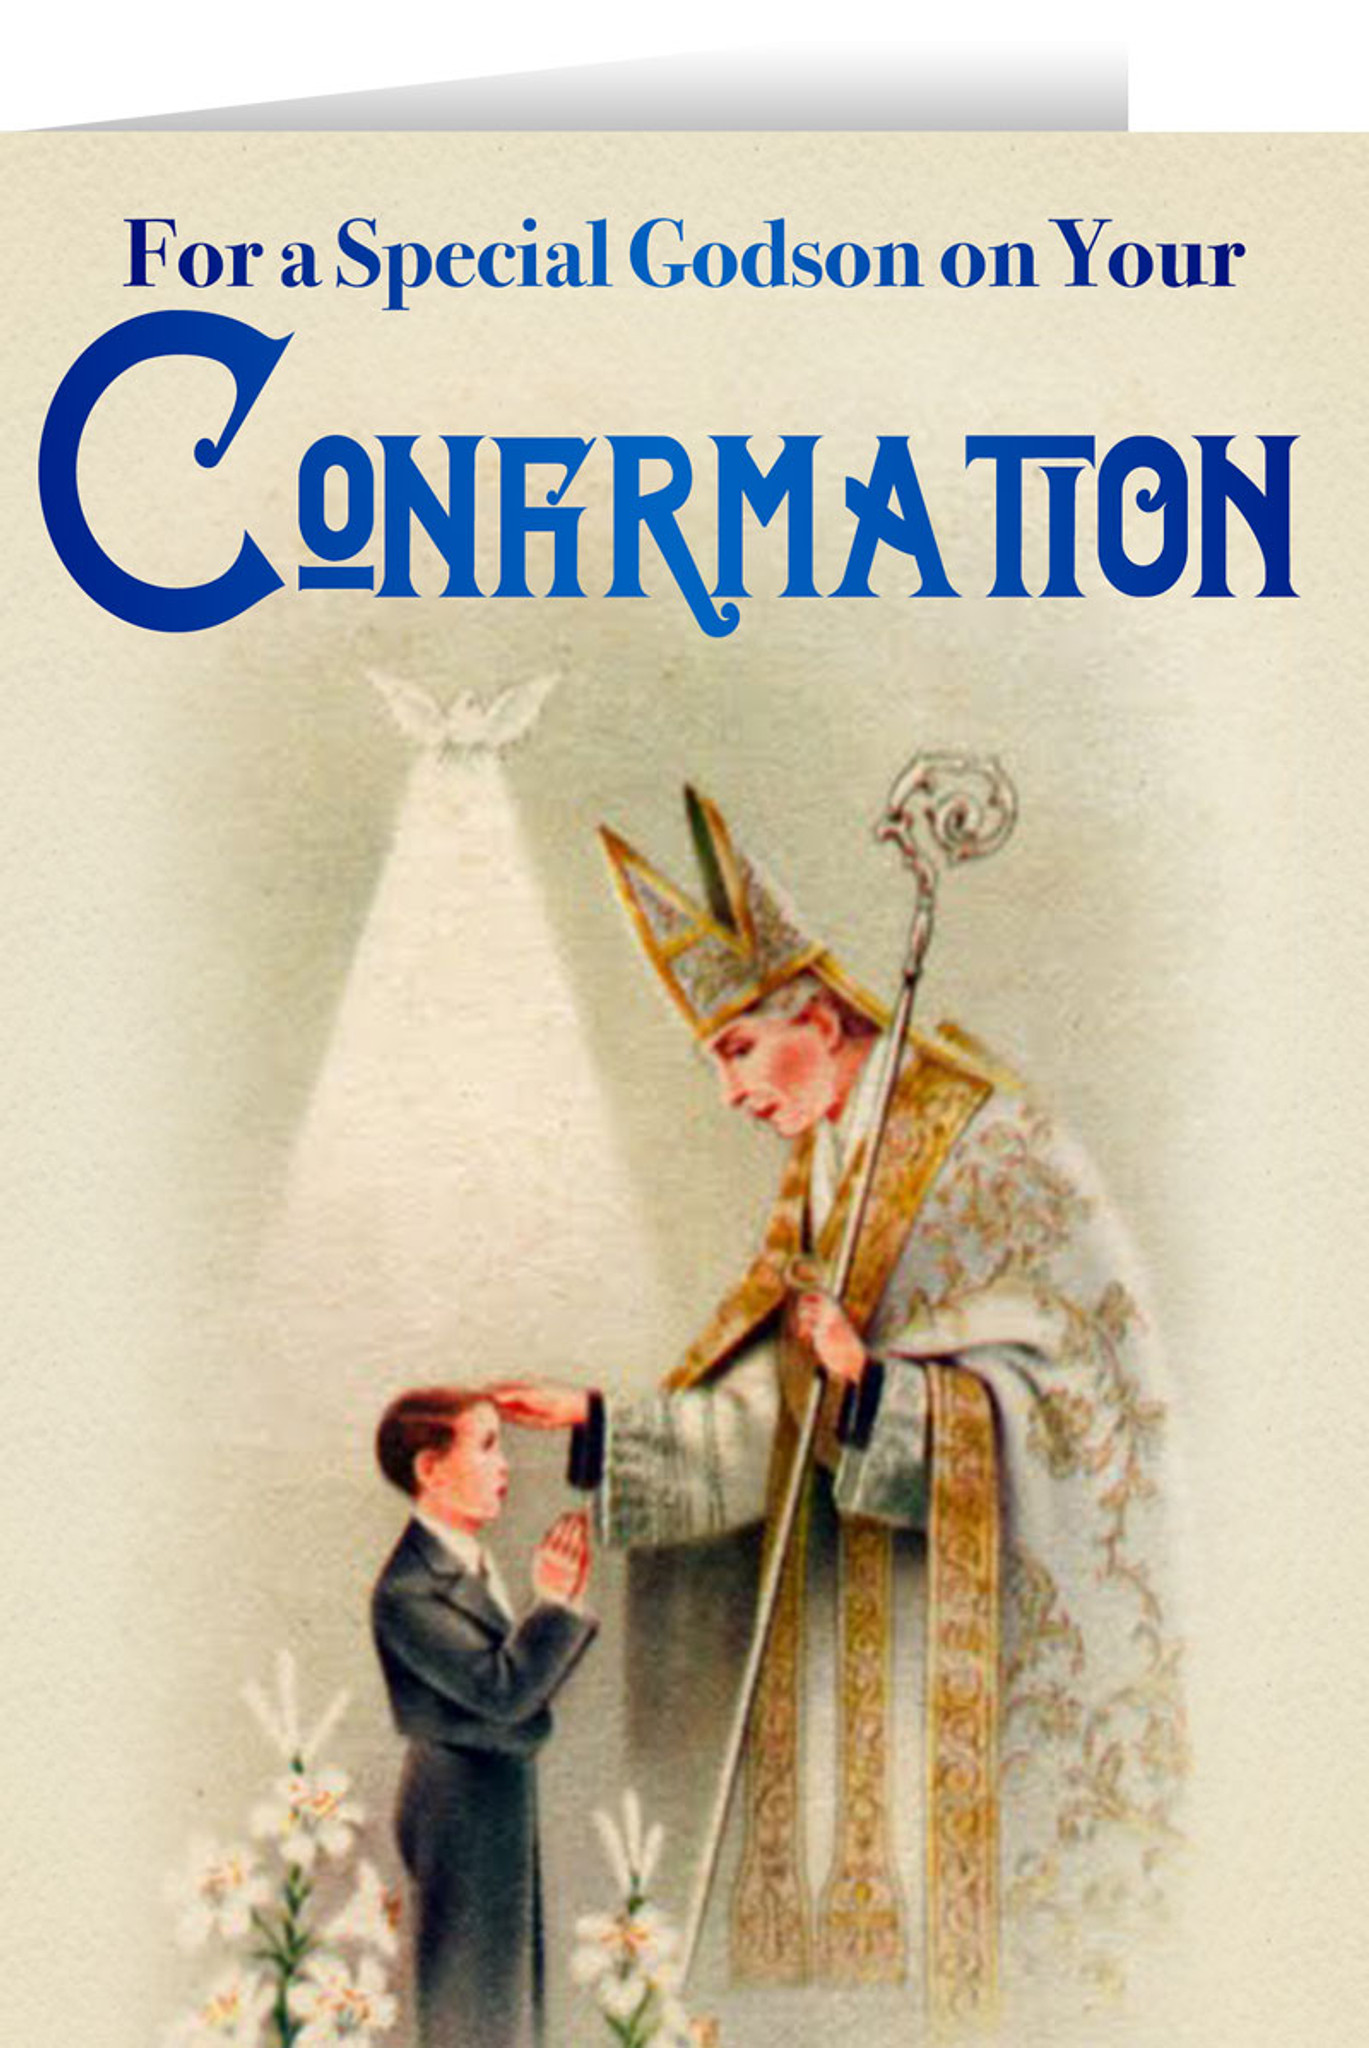 Godson\'s Confirmation Greeting Card - Nelson Fine Art & Gifts